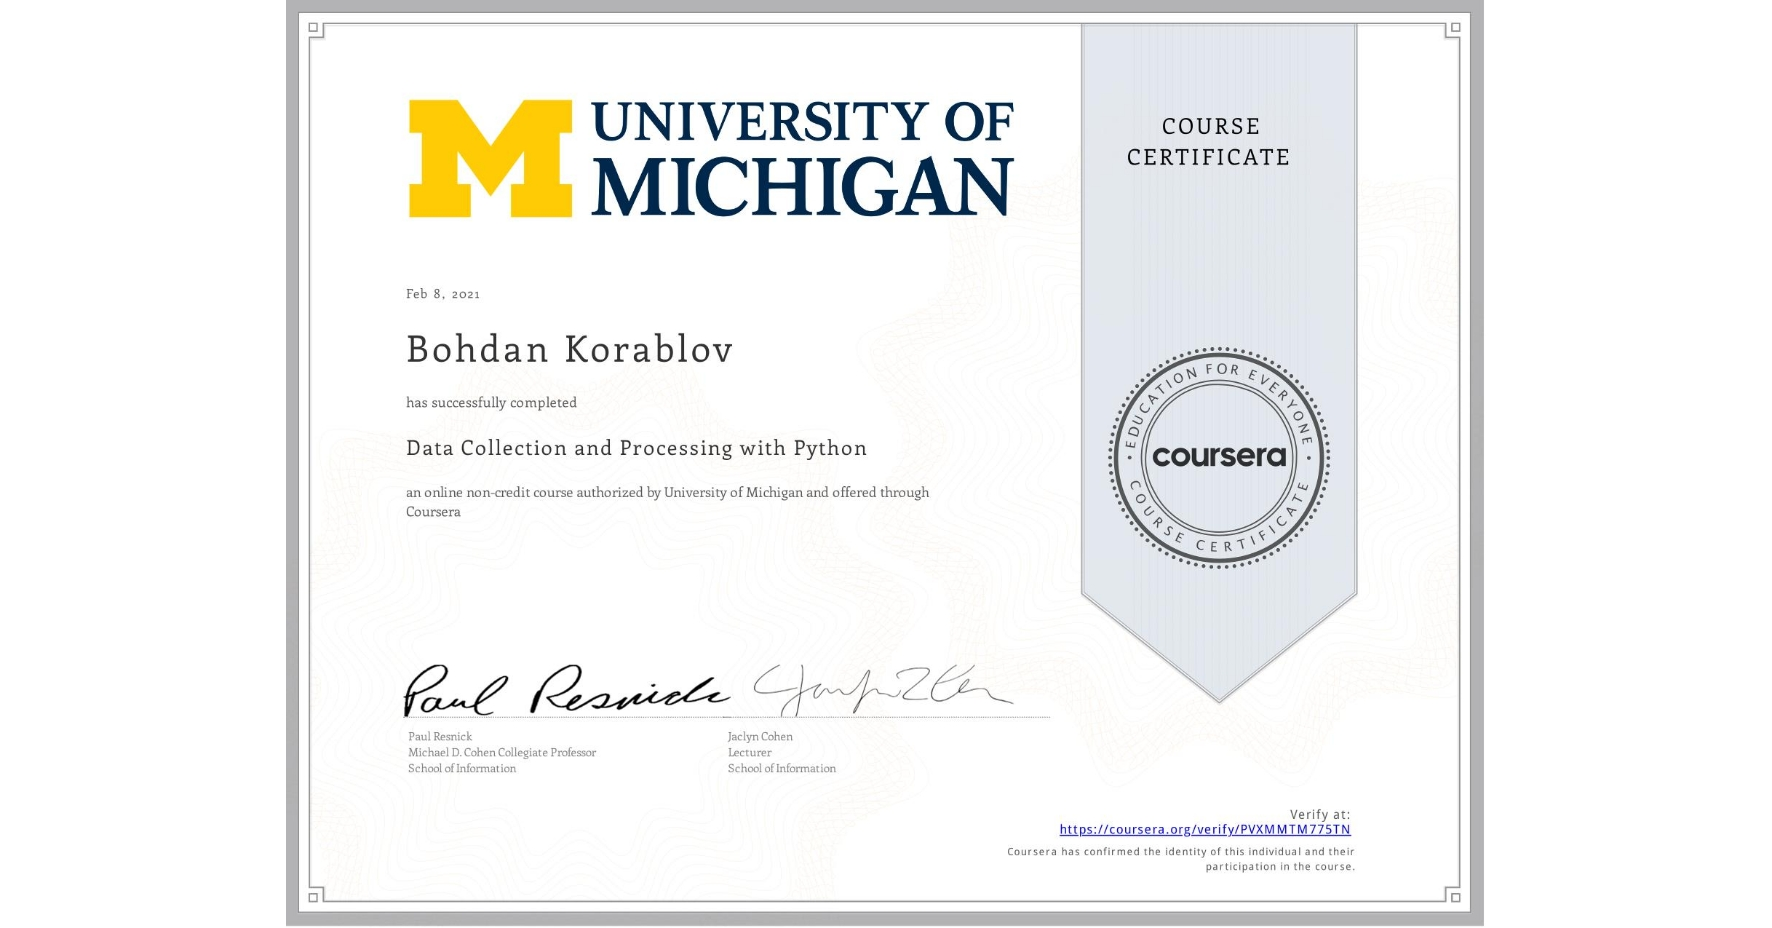 View certificate for Bohdan Korablov, Data Collection and Processing with Python, an online non-credit course authorized by University of Michigan and offered through Coursera